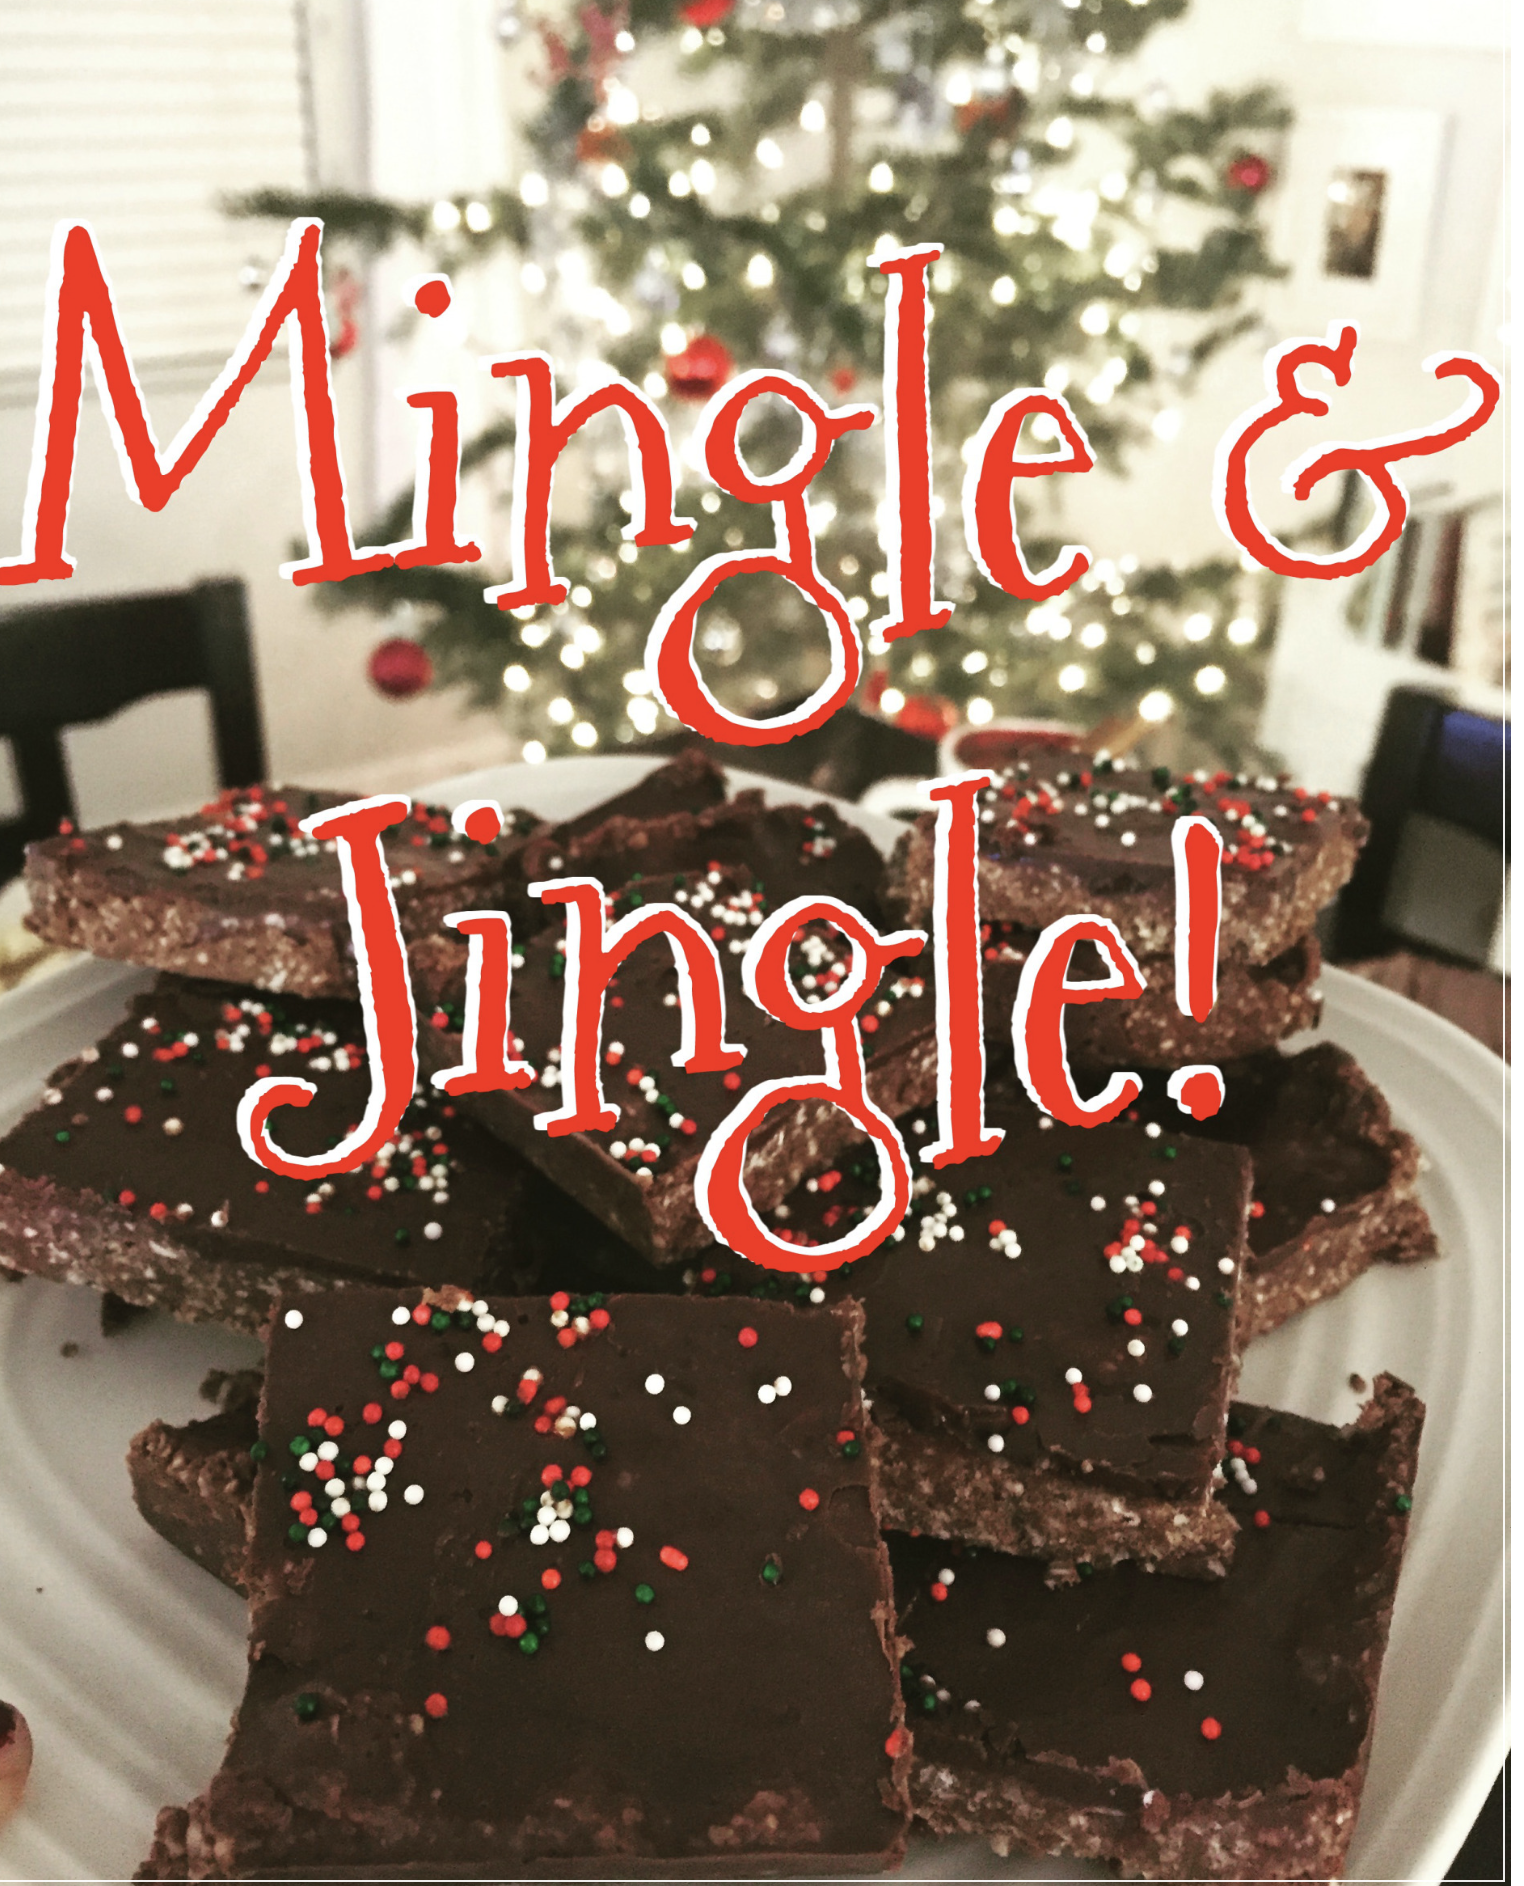 mingle-jingle